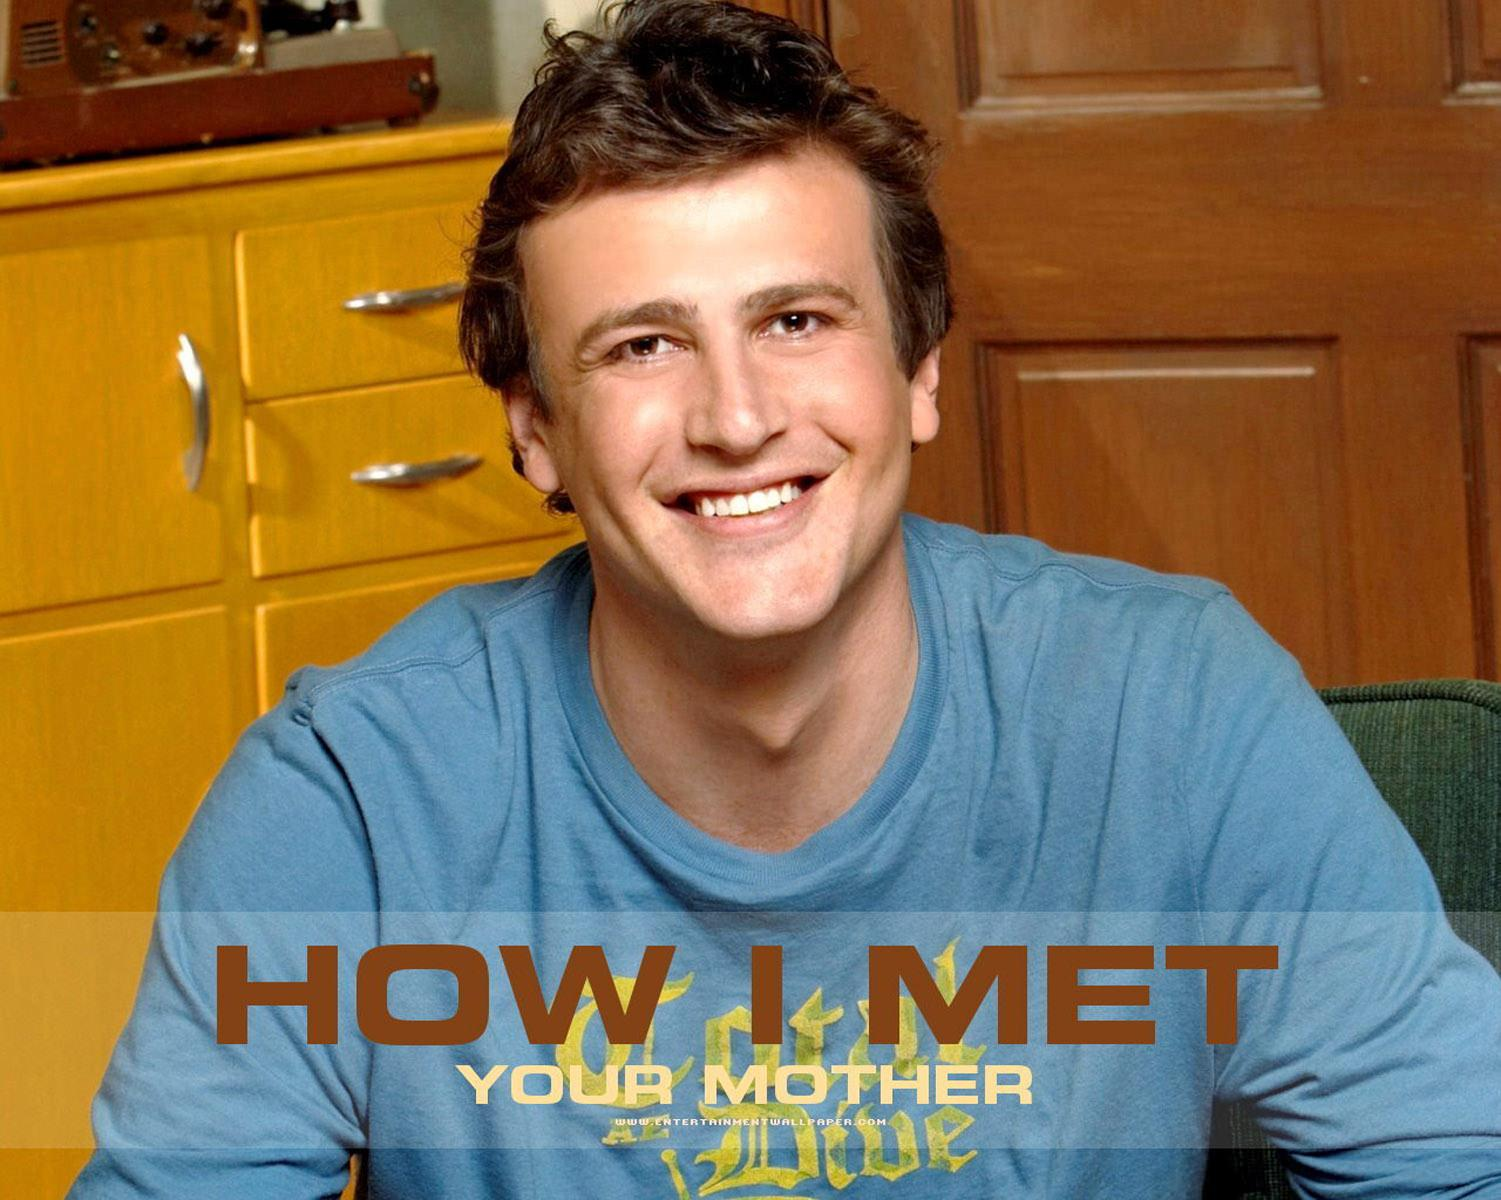 Marshall-how-i-met-your-mother-2960633-1280-1024